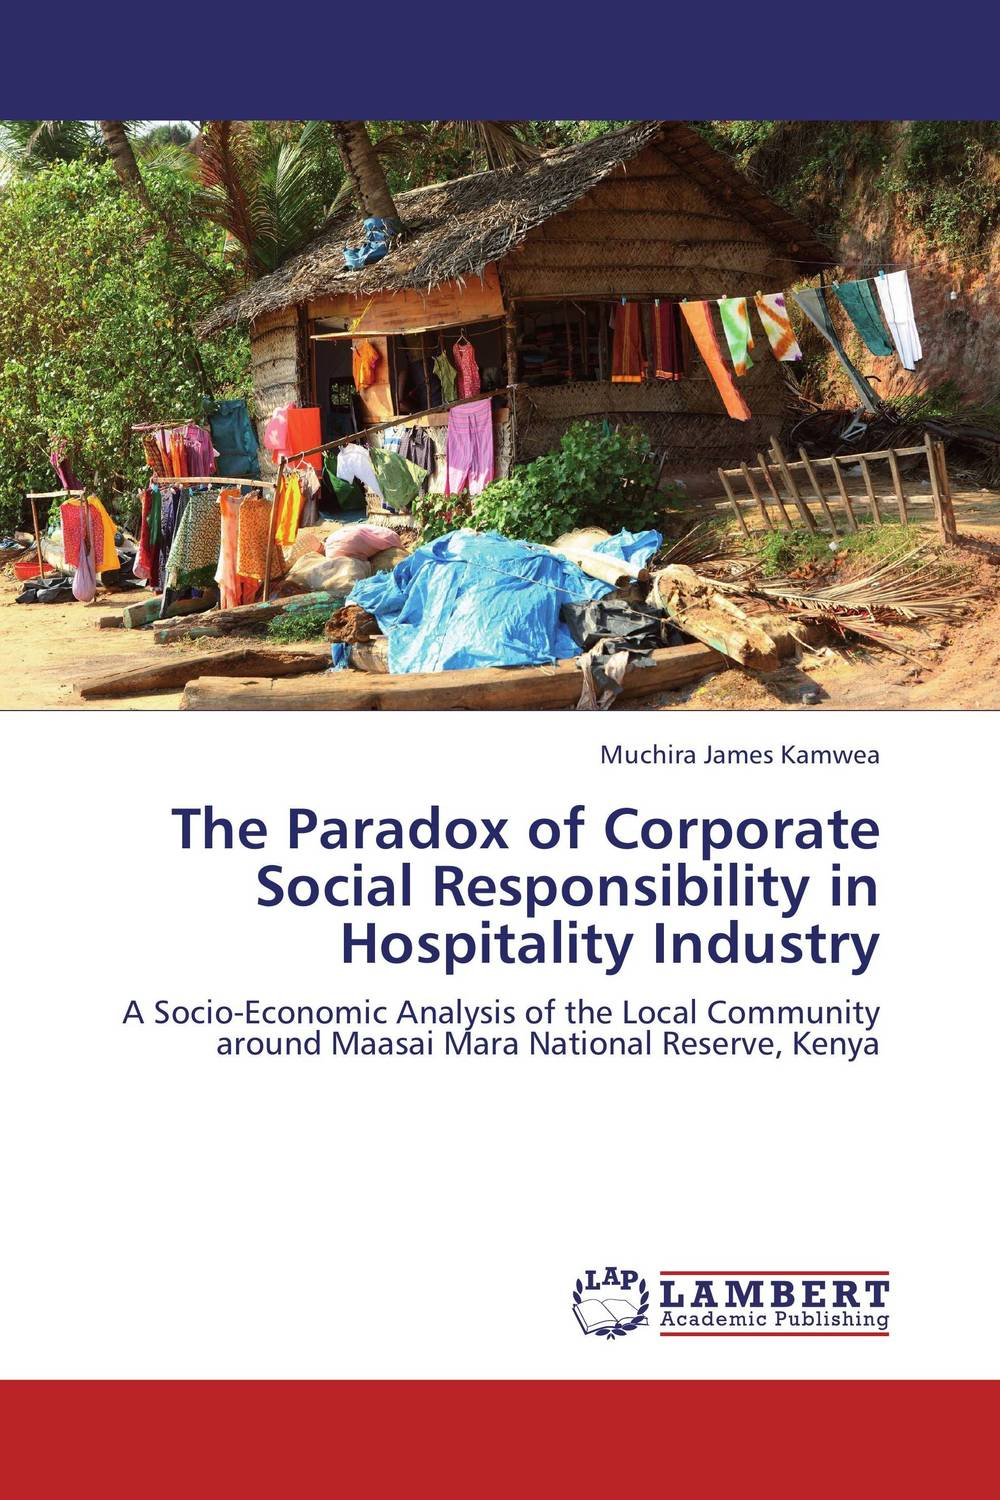 The Paradox of Corporate Social Responsibility in Hospitality Industry dan zheng the impact of employees perception of corporate social responsibility